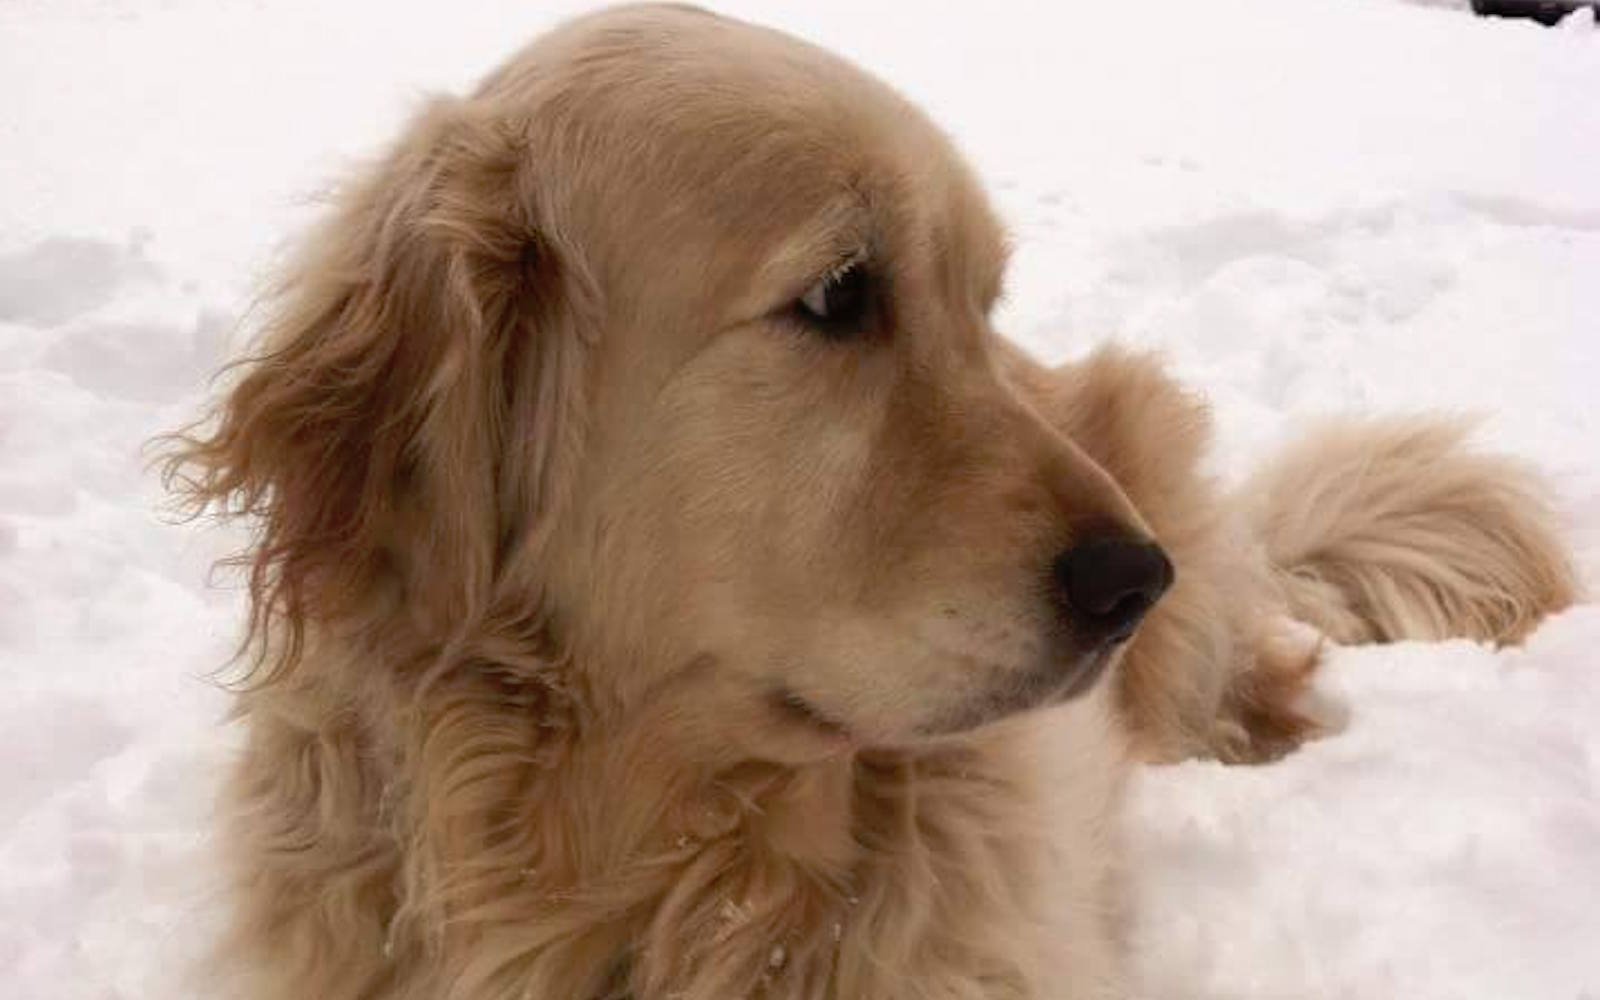 Kathleen Considine's golden retriever, Jacob, who died after a United Airlines flight